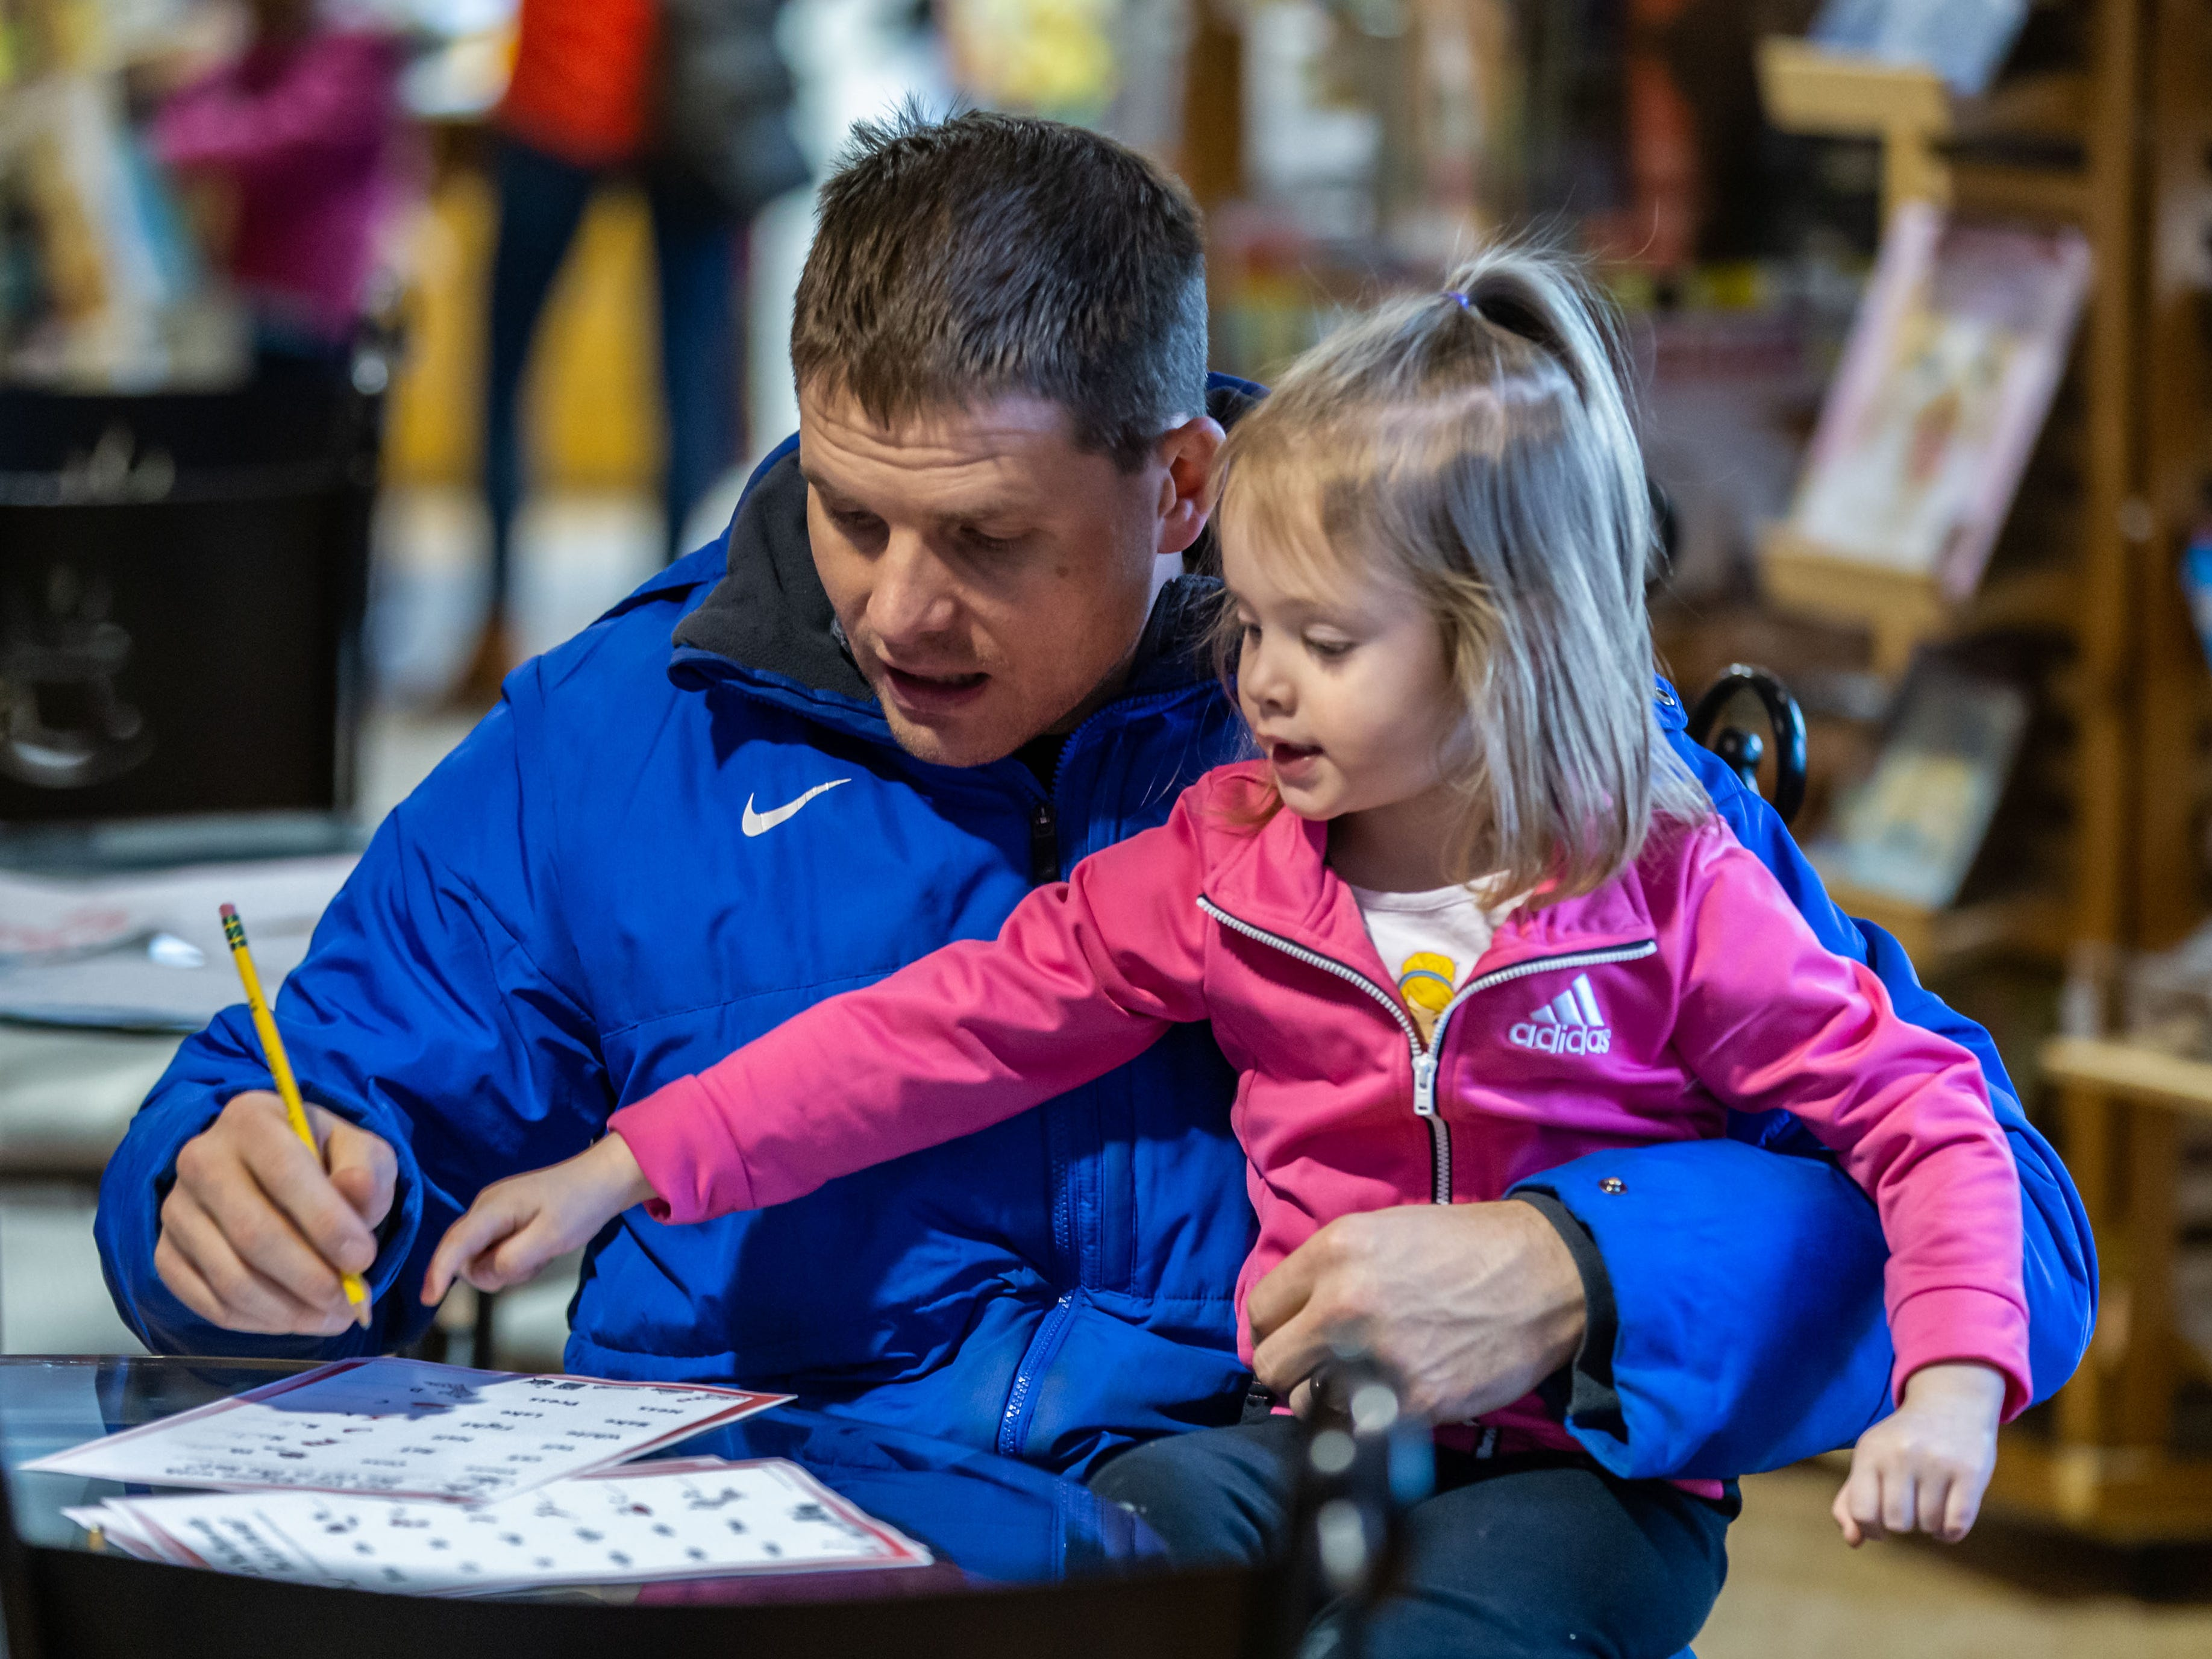 Patrick Detmer and his daughter Hailey, 3, of Waukesha play a game at Martha Merrell's Books & Toys during the Birthday Bash Downtown Waukesha Art Crawl on Saturday, March 2, 2019. The event celebrated the birthday of Dr. Seuss with a special birthday party complete with cake, coloring pages and more at Martha Merrell's Books.